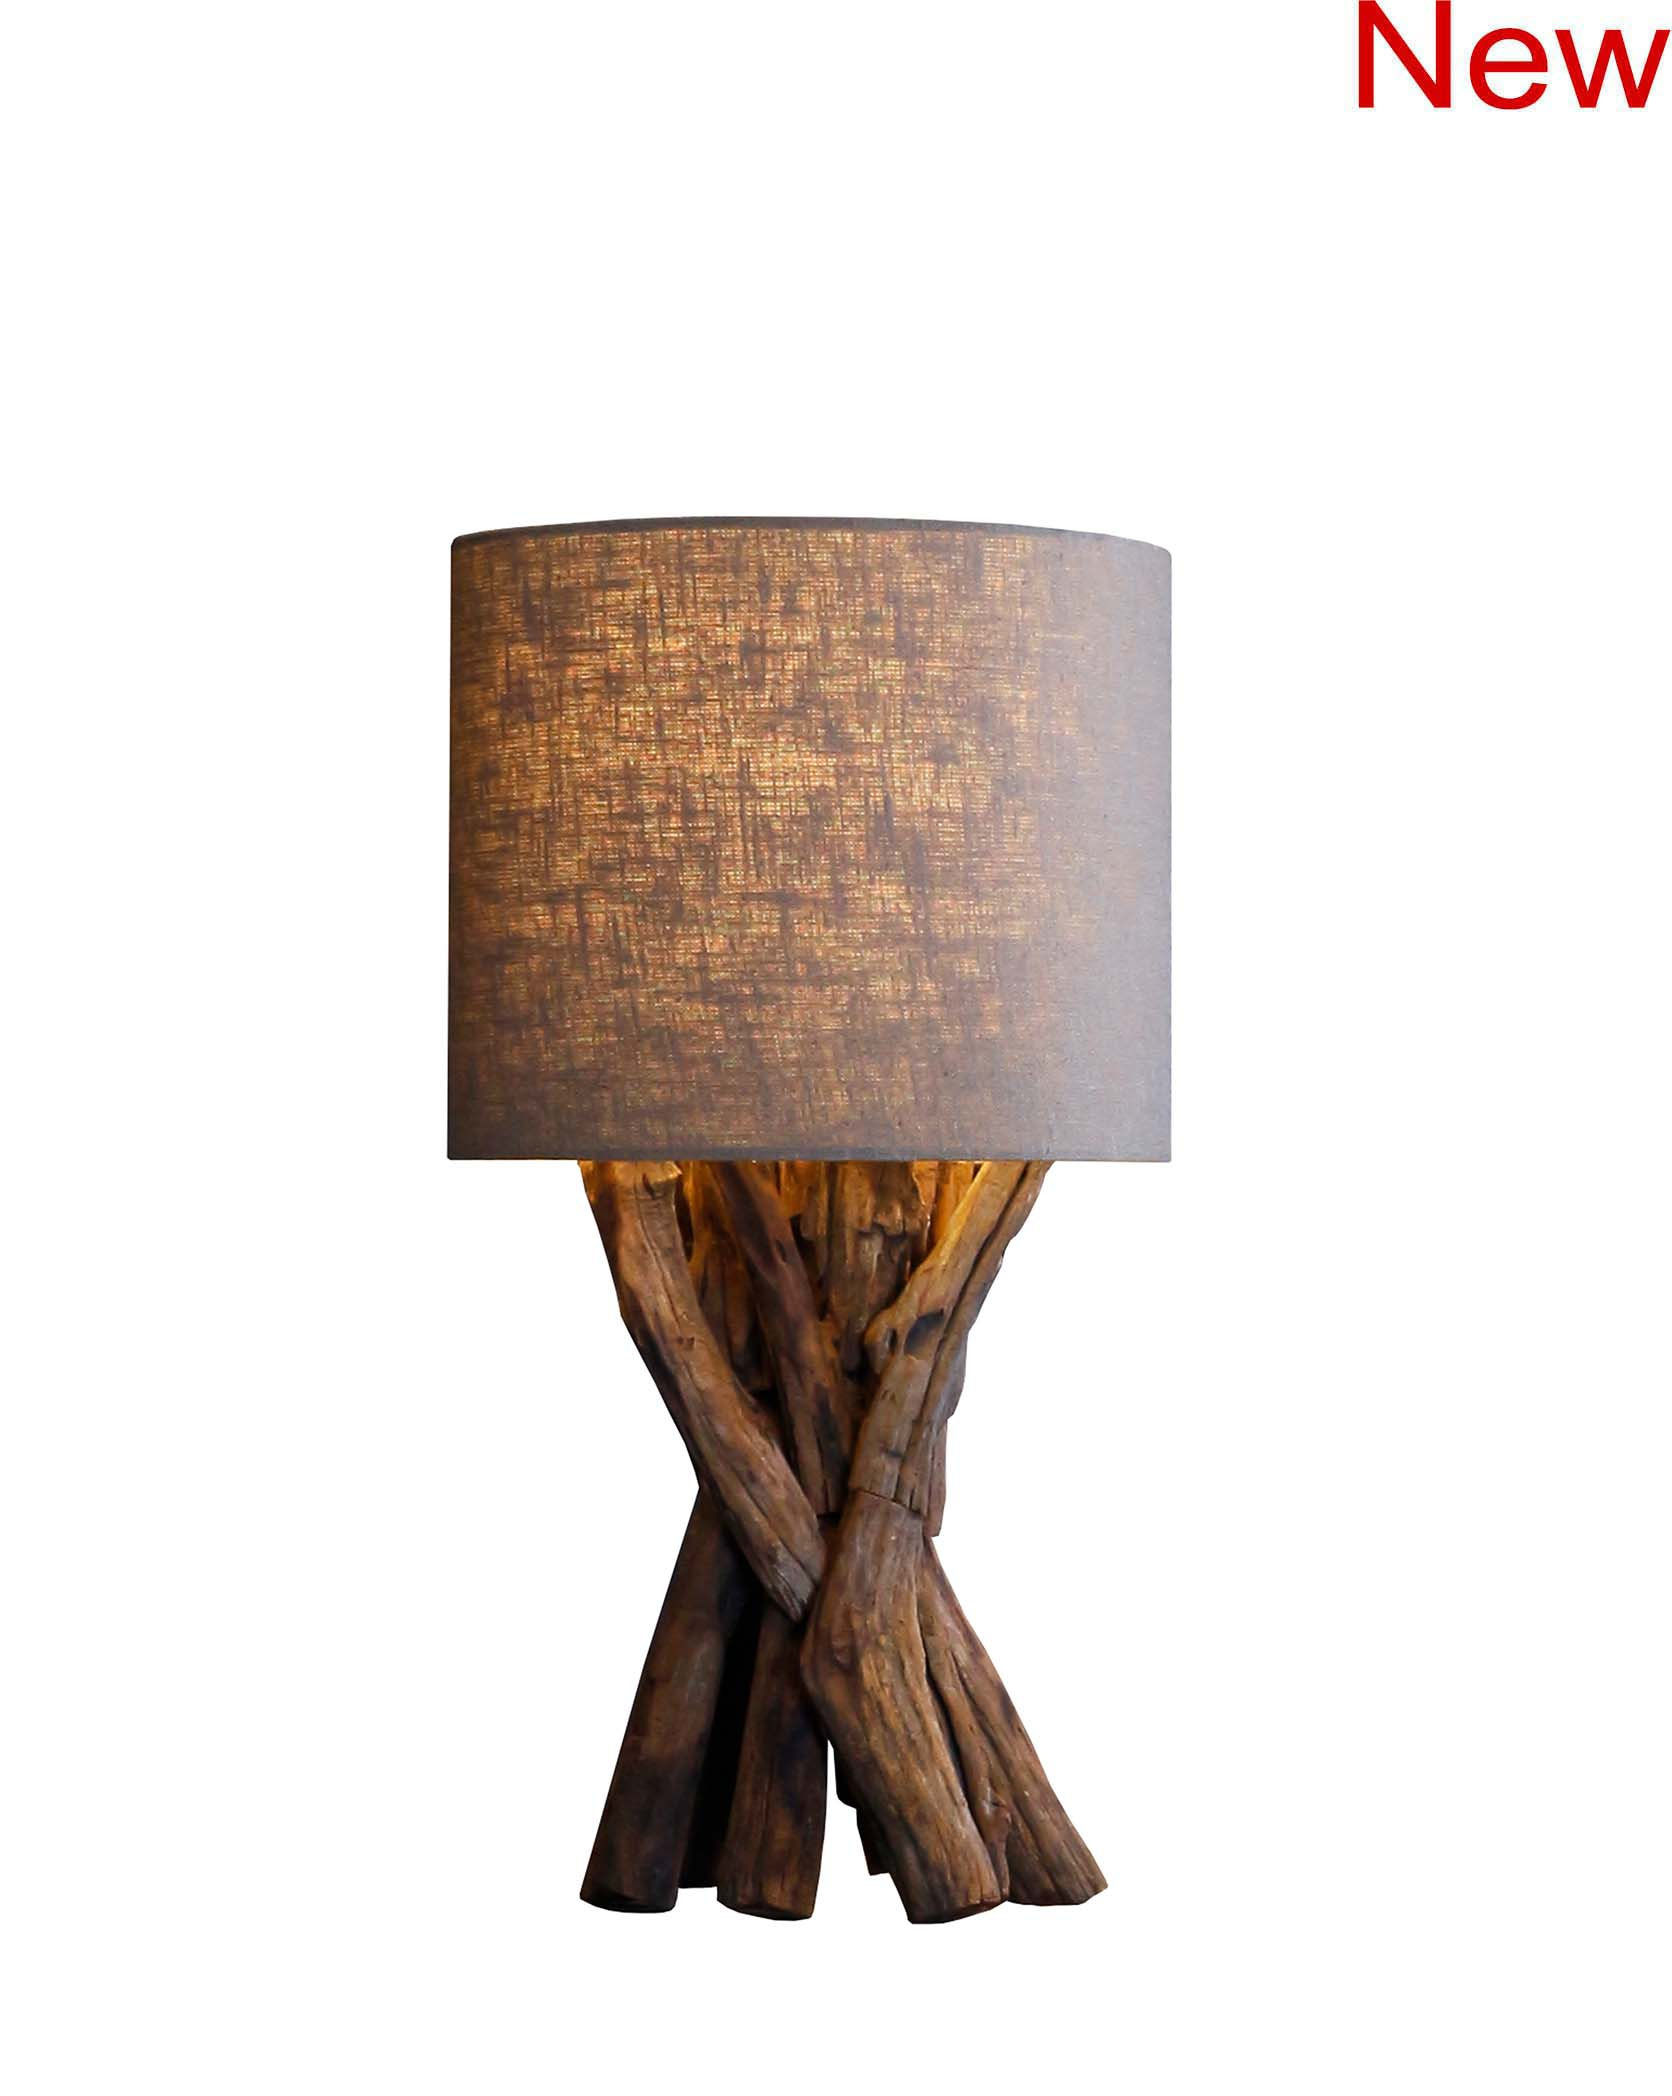 Rough wood table lamp product photo #2